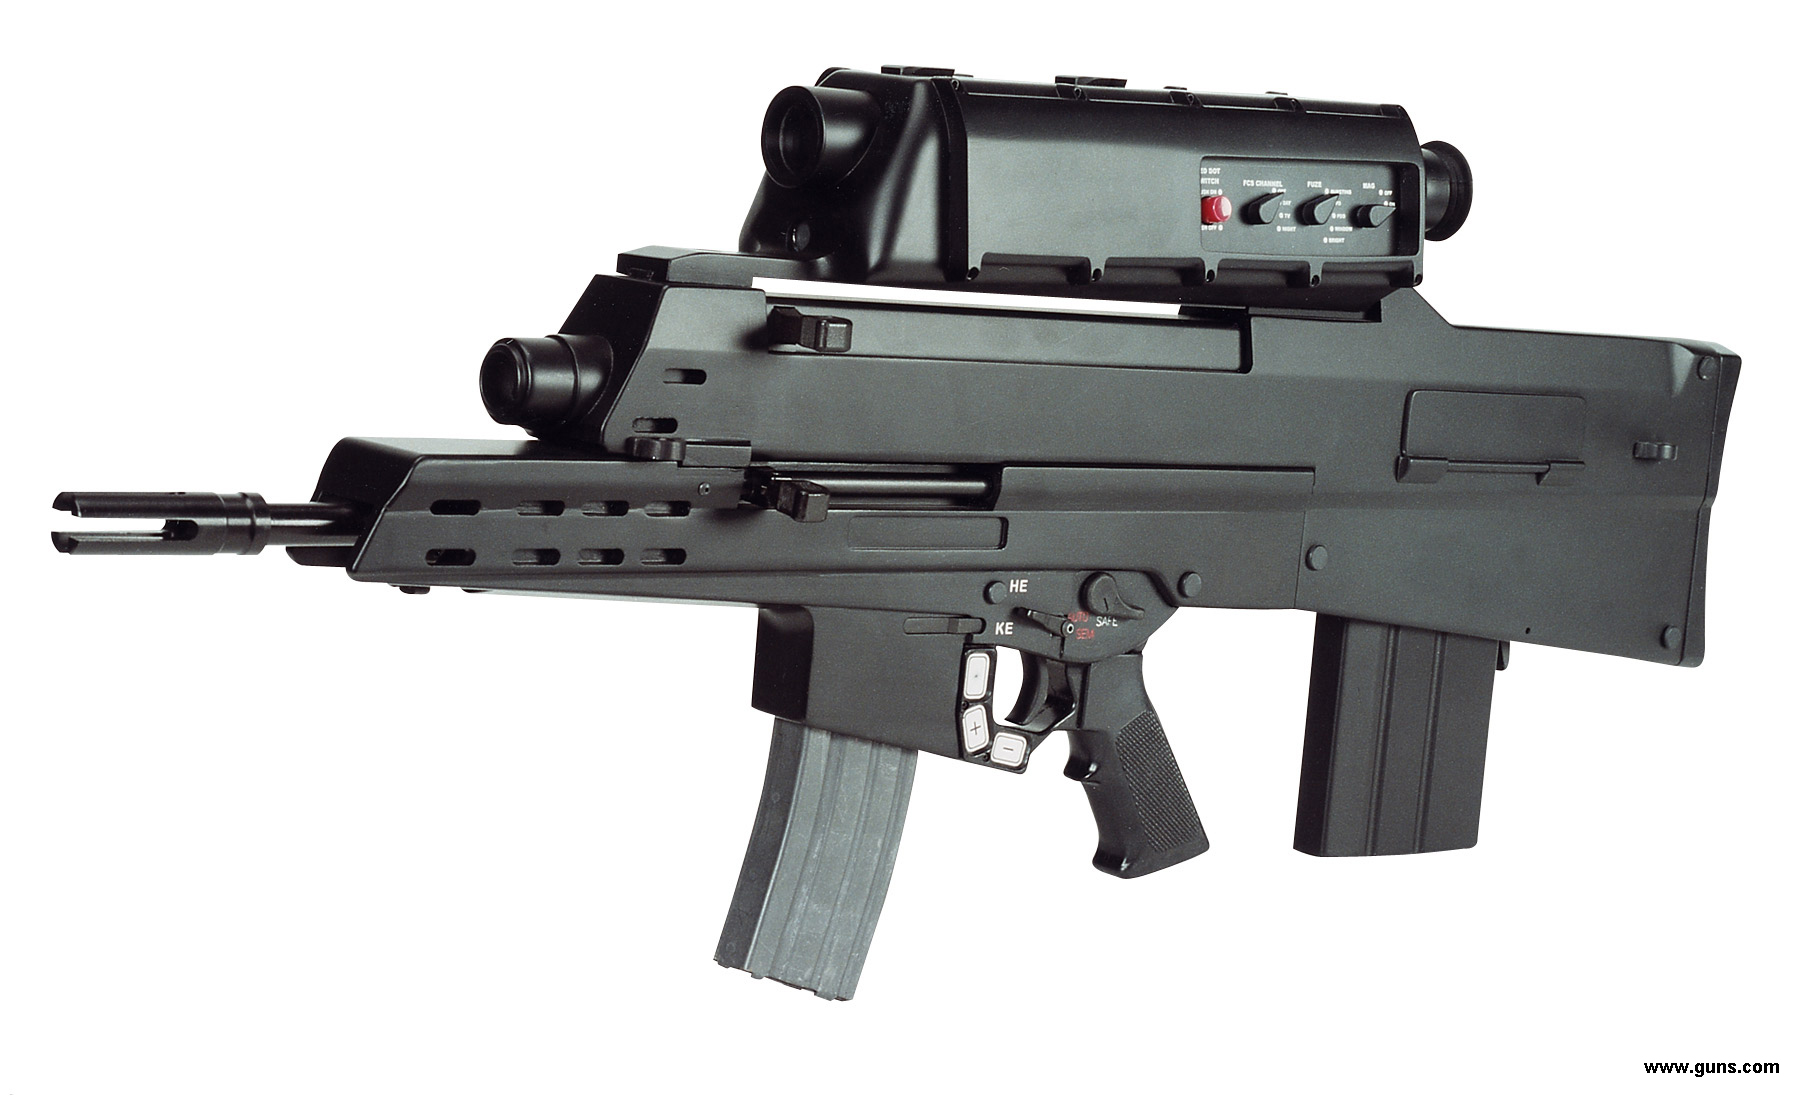 fusil d'assaut DAEWOO K11 police scientifique